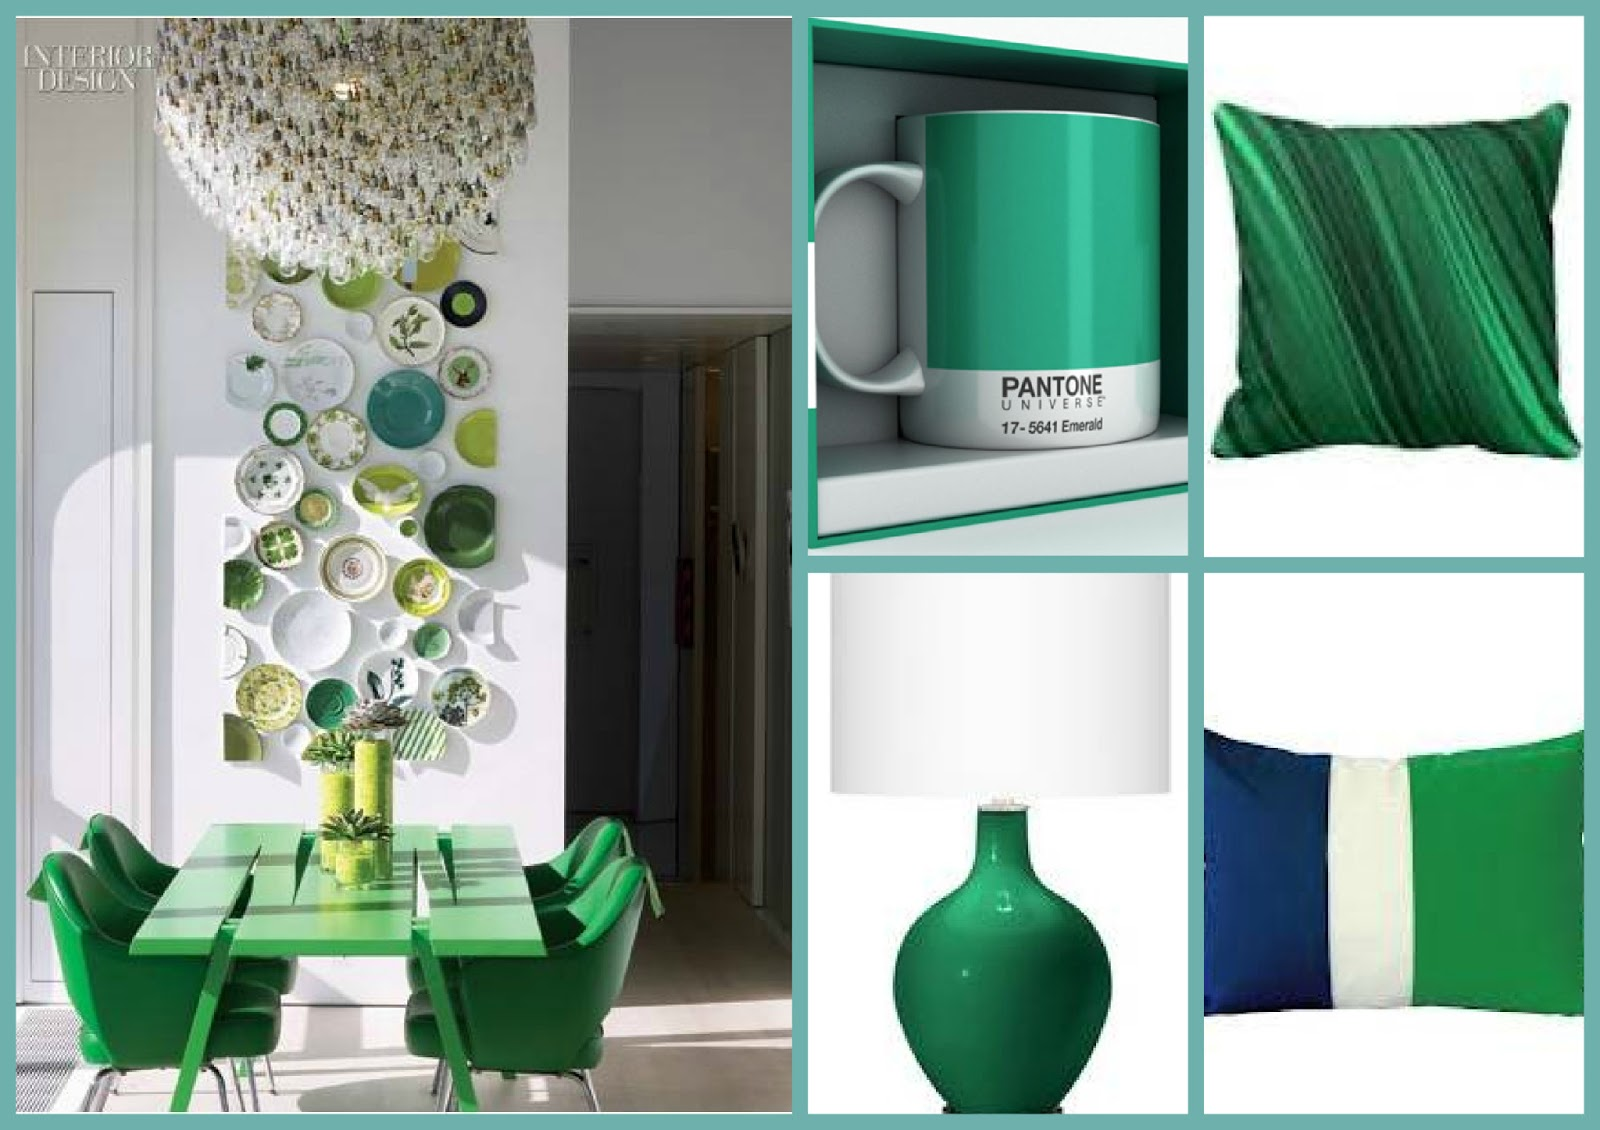 Key interiors by shinay 2013 color of the year emerald for Benjamin moore color of the year 2013